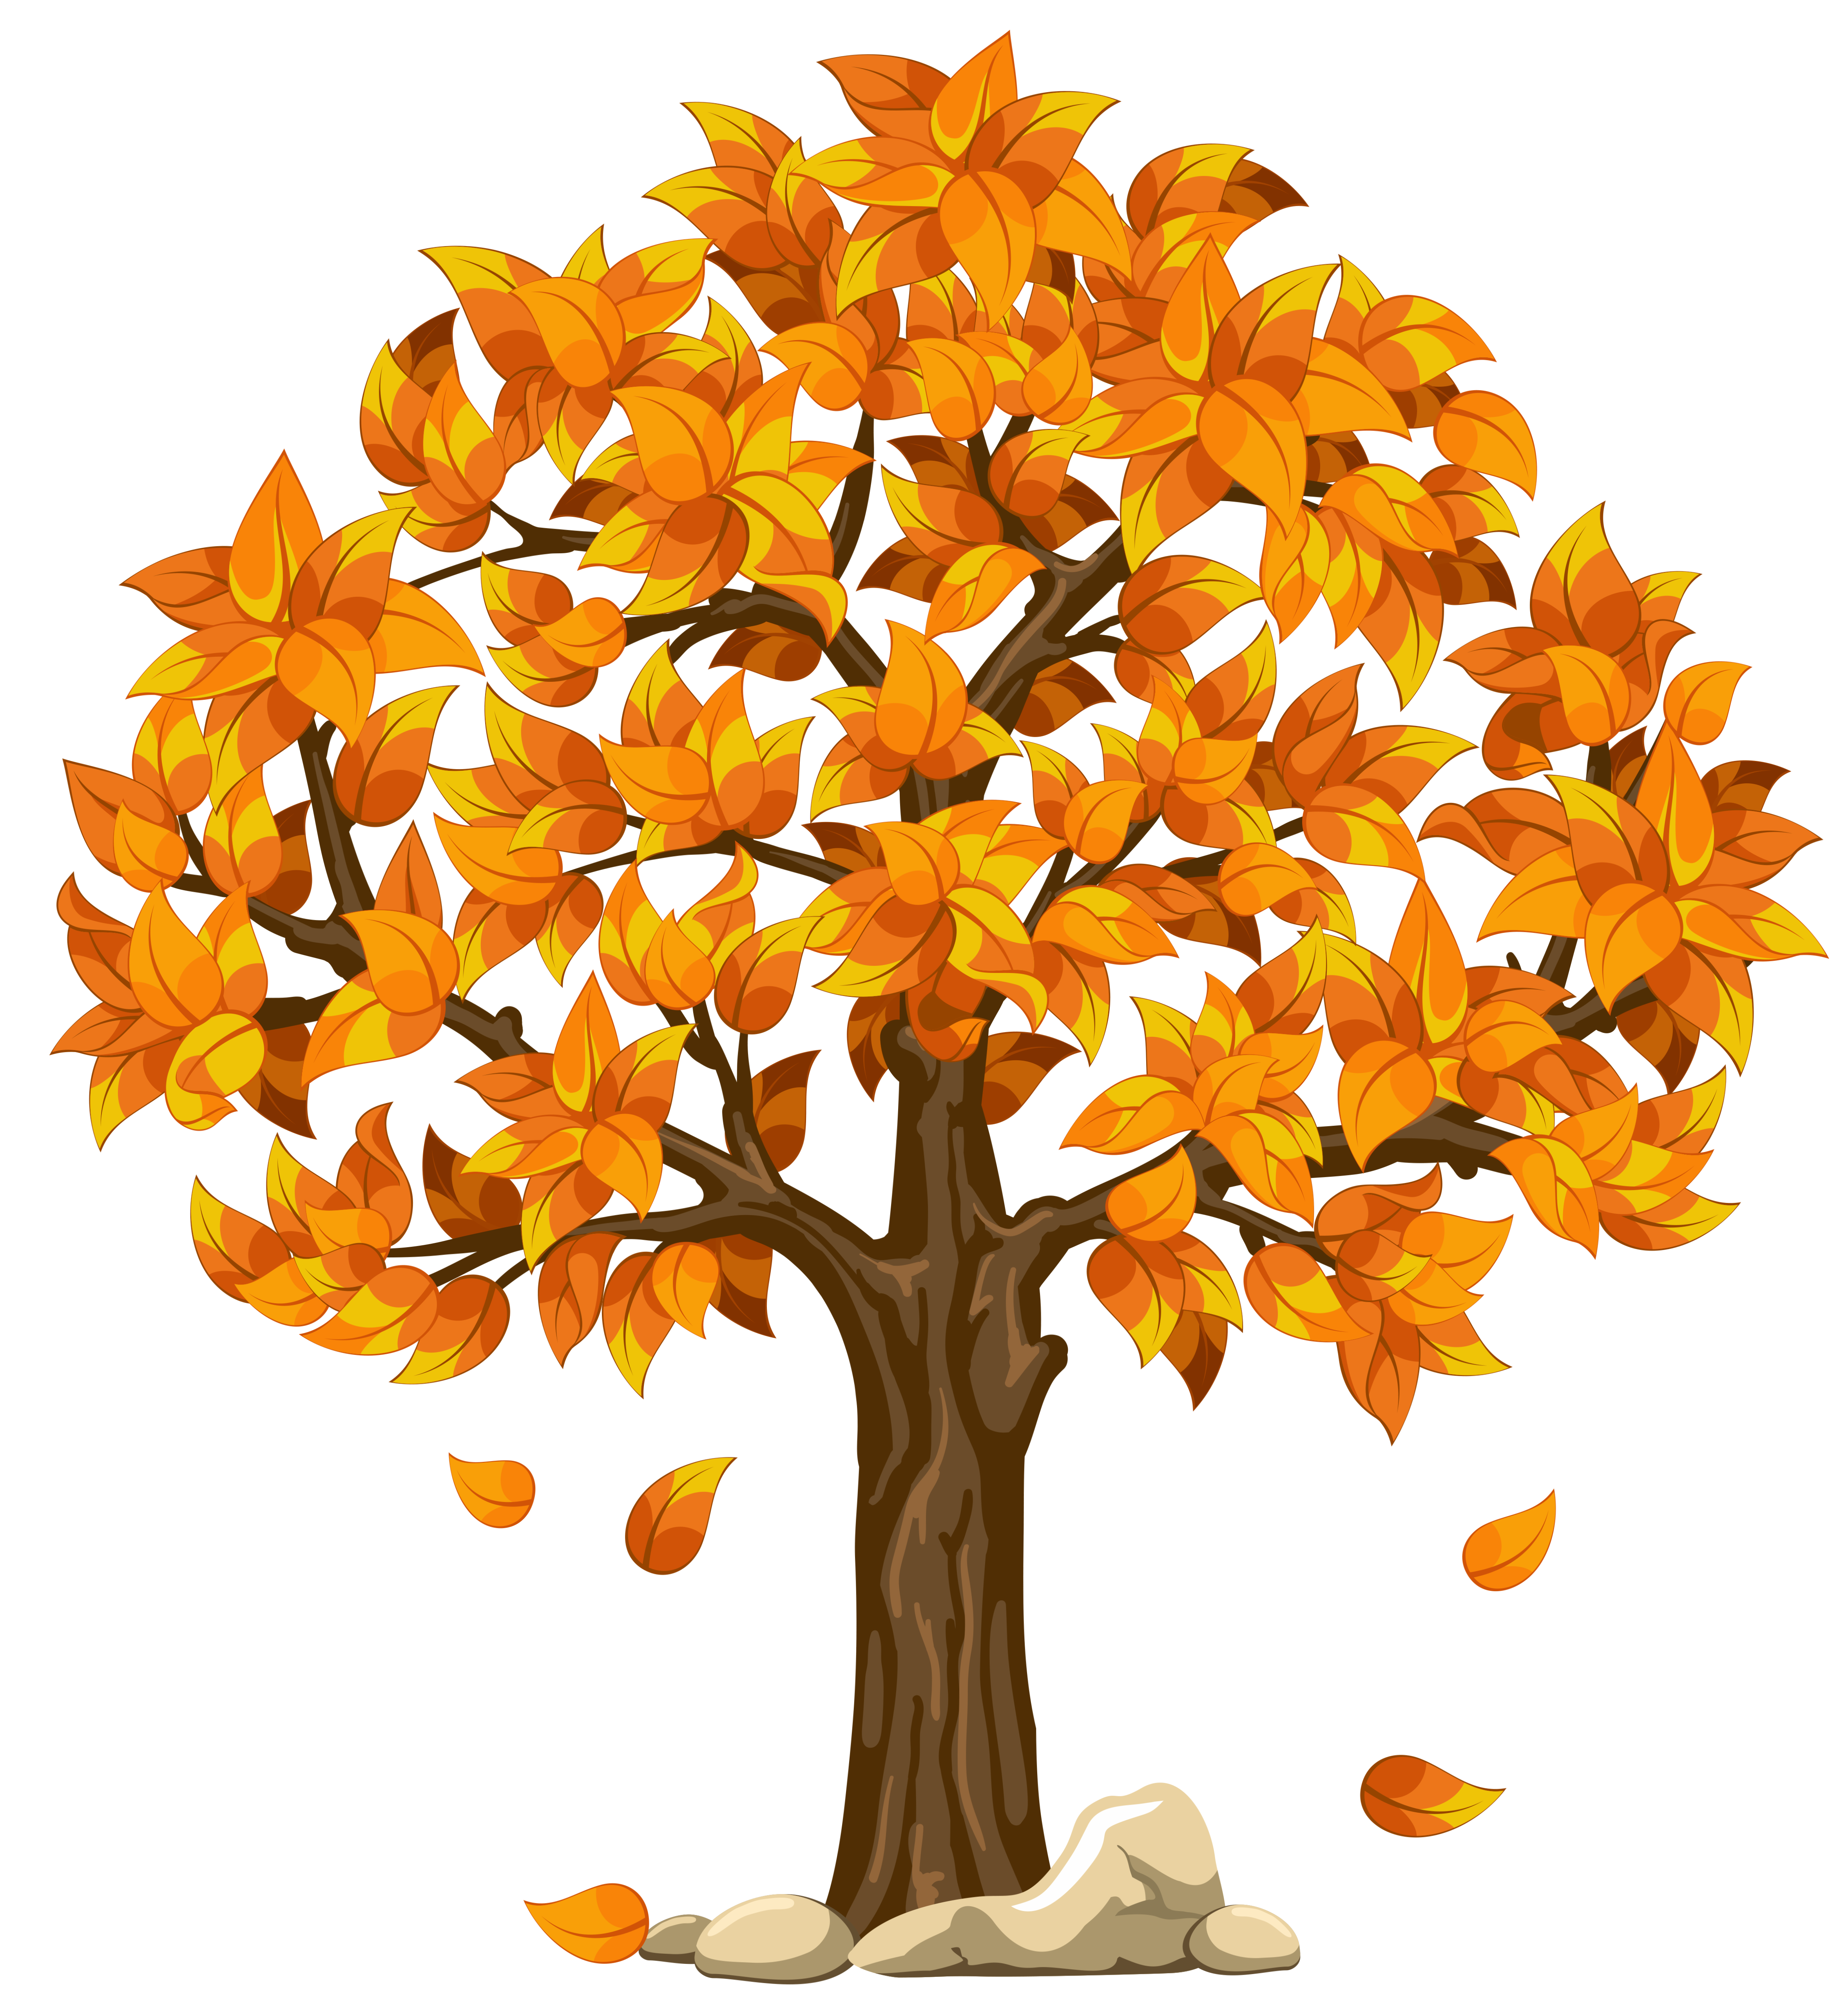 Orange tree clipart picture library download autumn tree clip art free autumn tree clip art 45 - Clip Art. Net picture library download